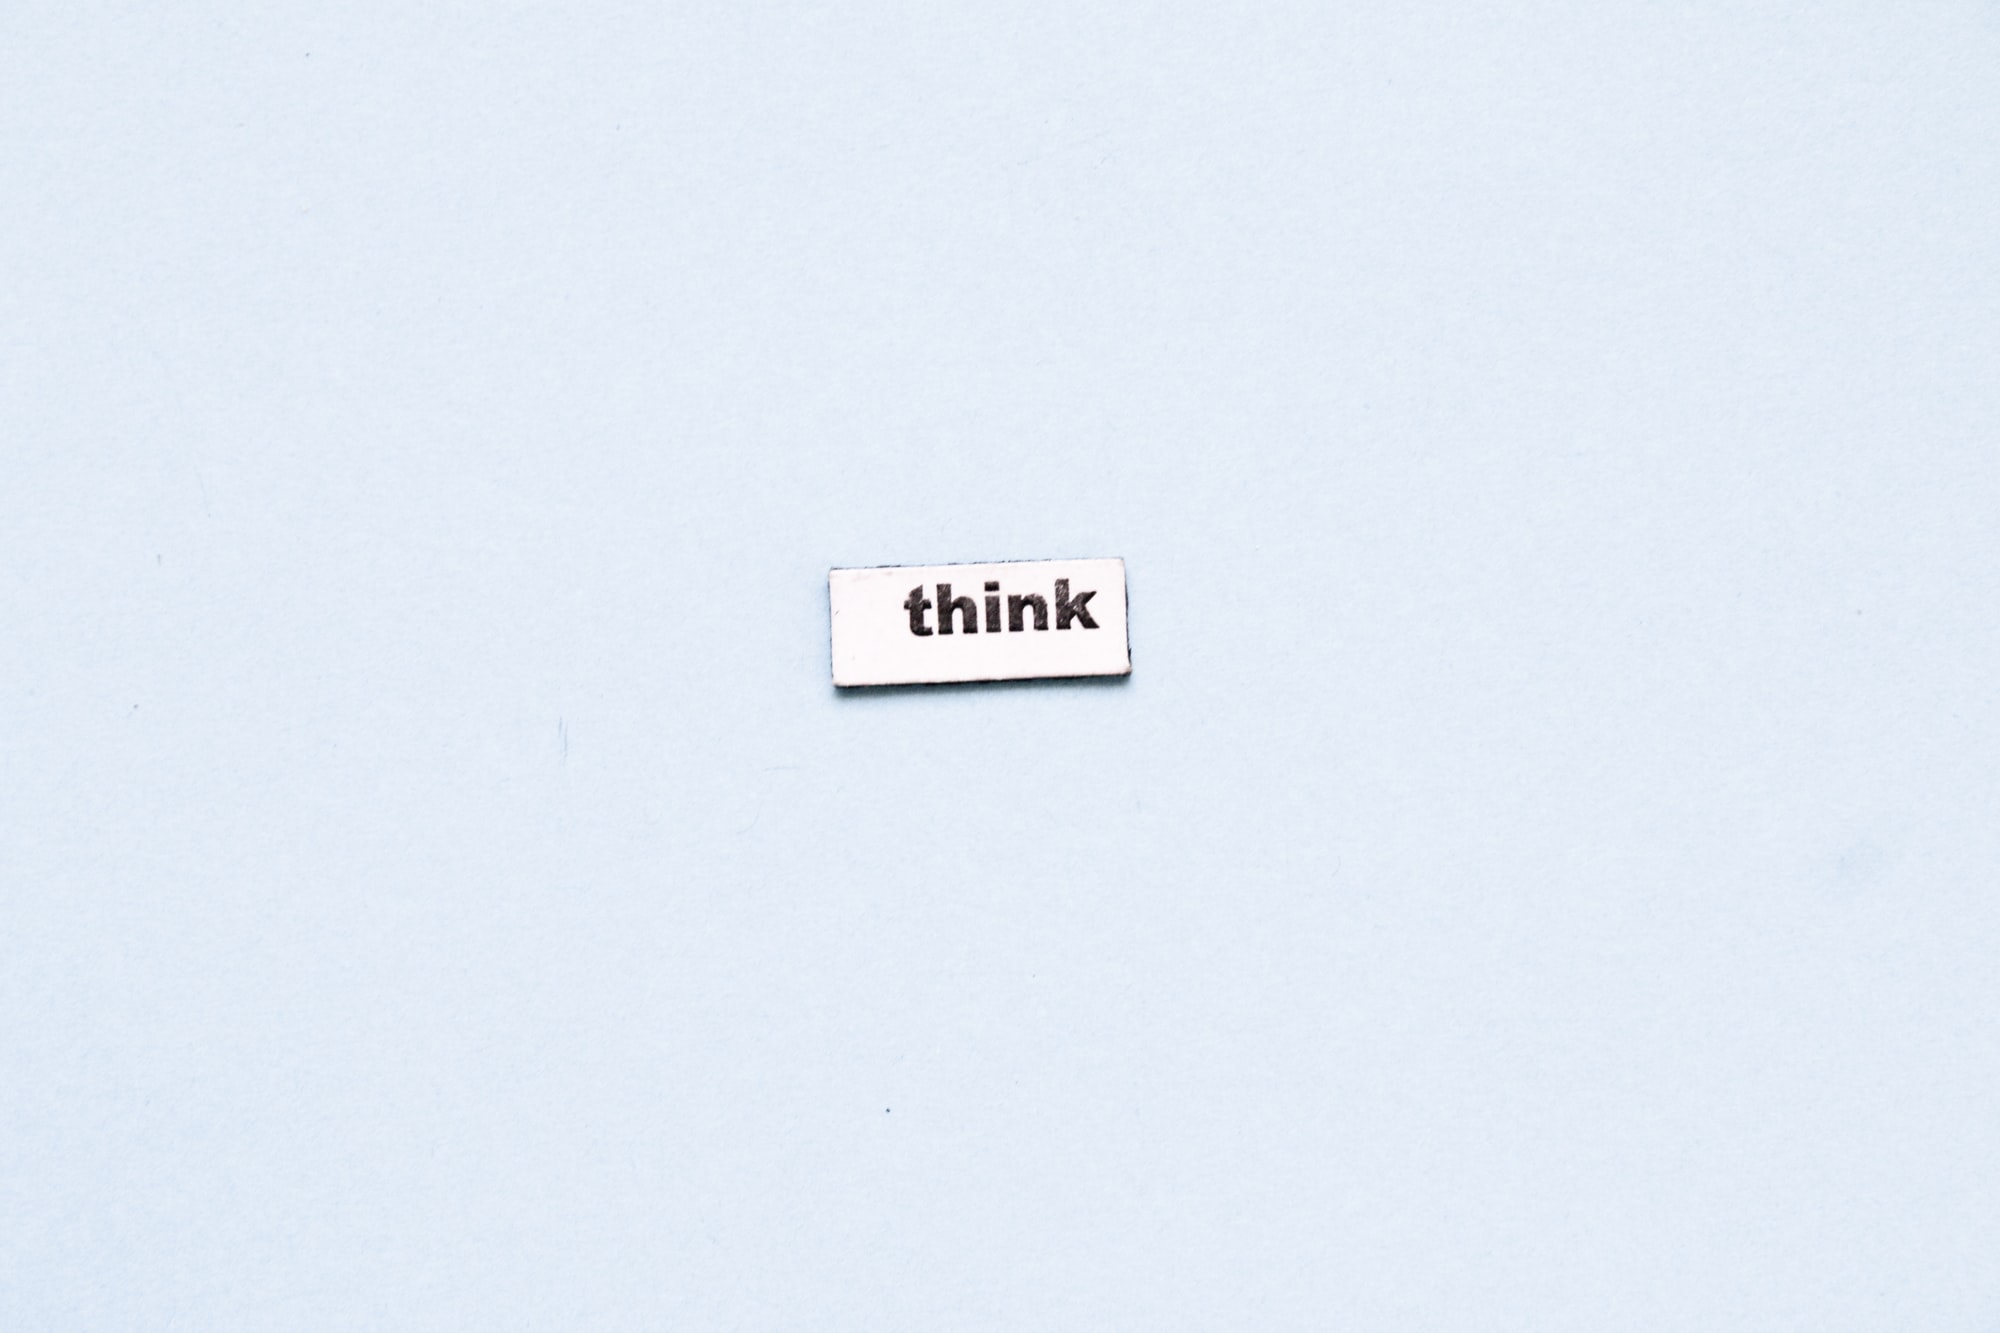 the word think on the pale blue background